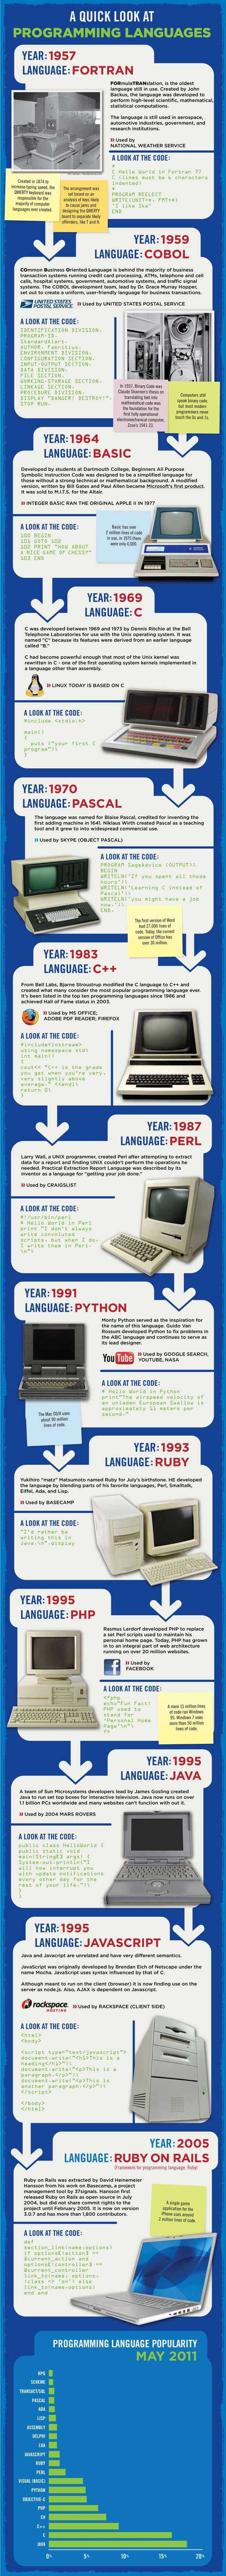 Evolution of Comp Programming Infographic